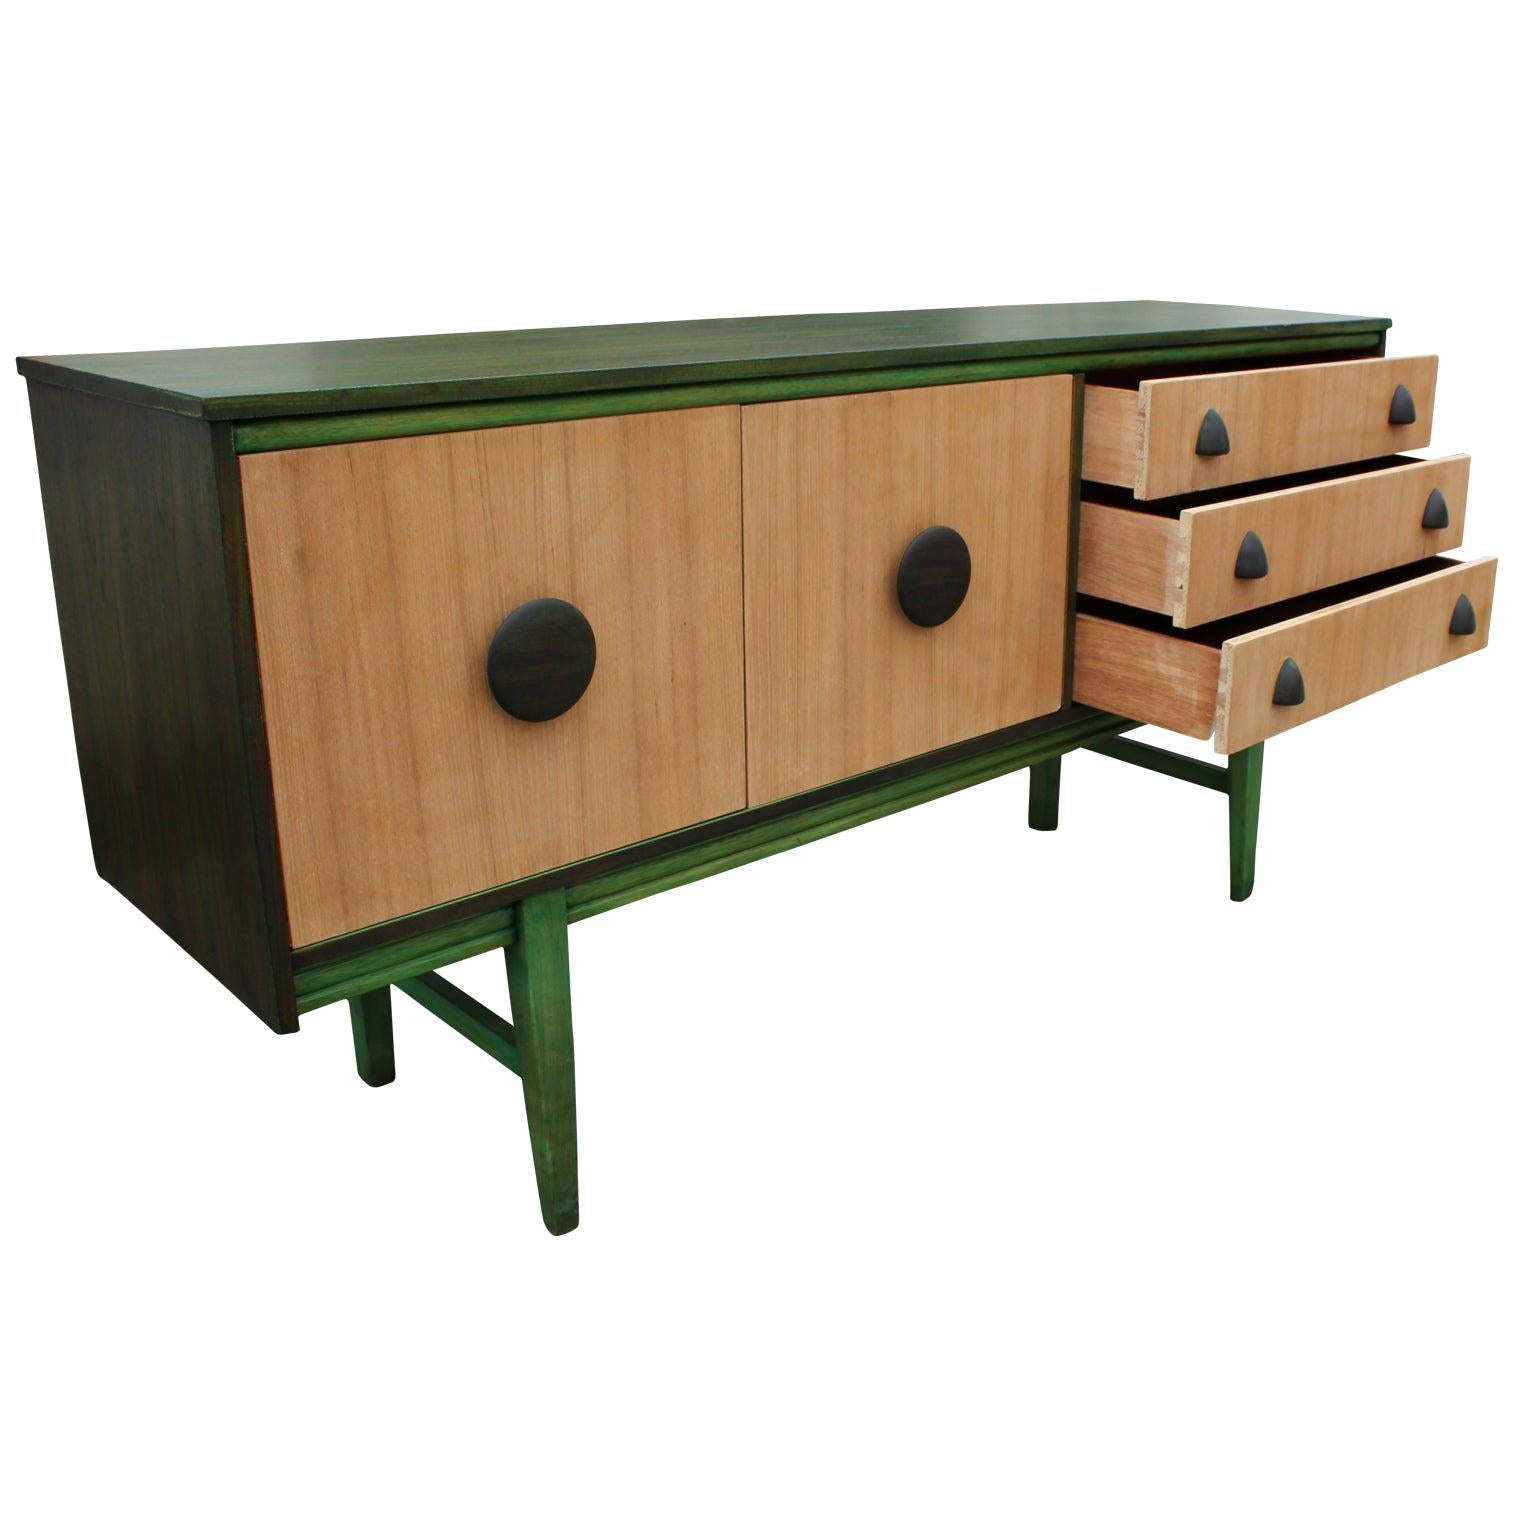 Modern Restored Two-Toned Green Dyed and Natural Wood Dresser / Sideboard